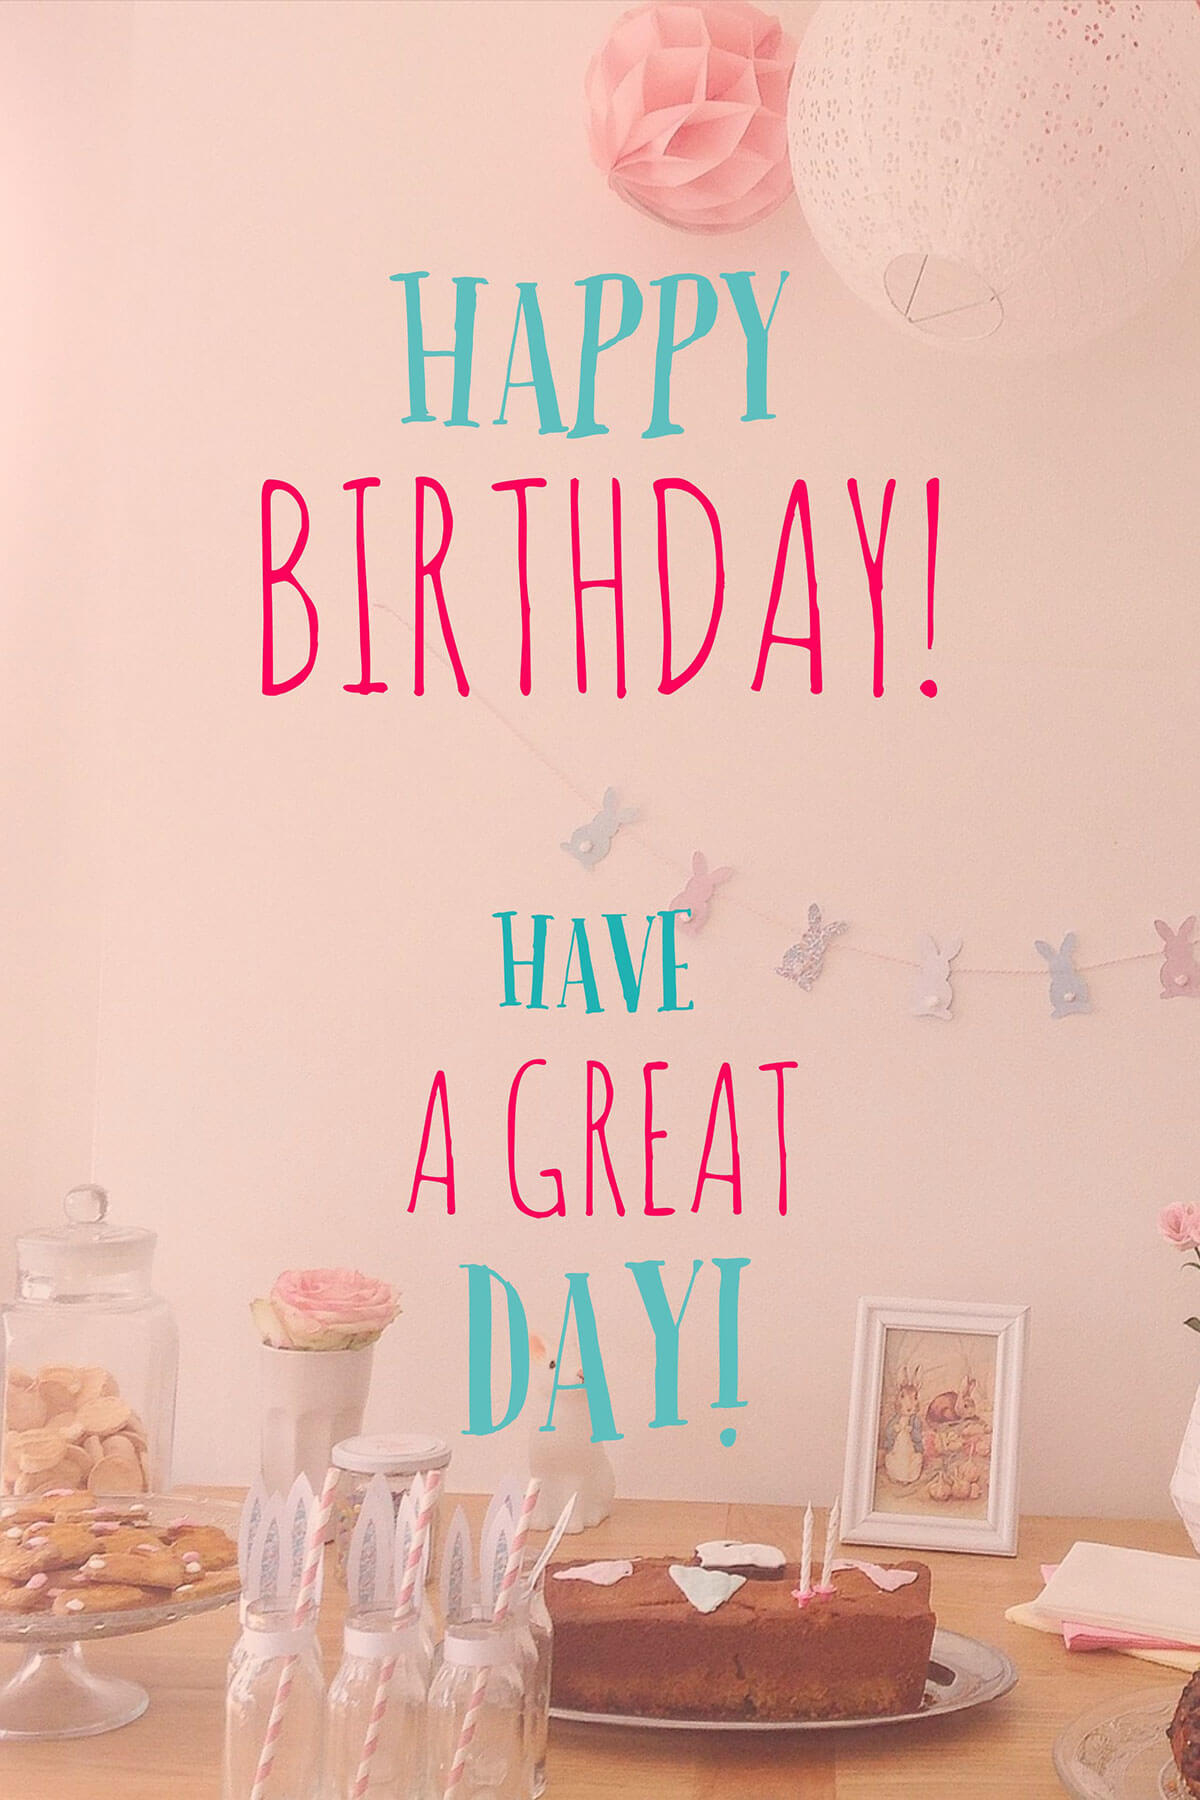 Free Online Card Maker: Create Custom Greeting Cards   Adobe Spark - Make Your Own Printable Birthday Cards Online Free